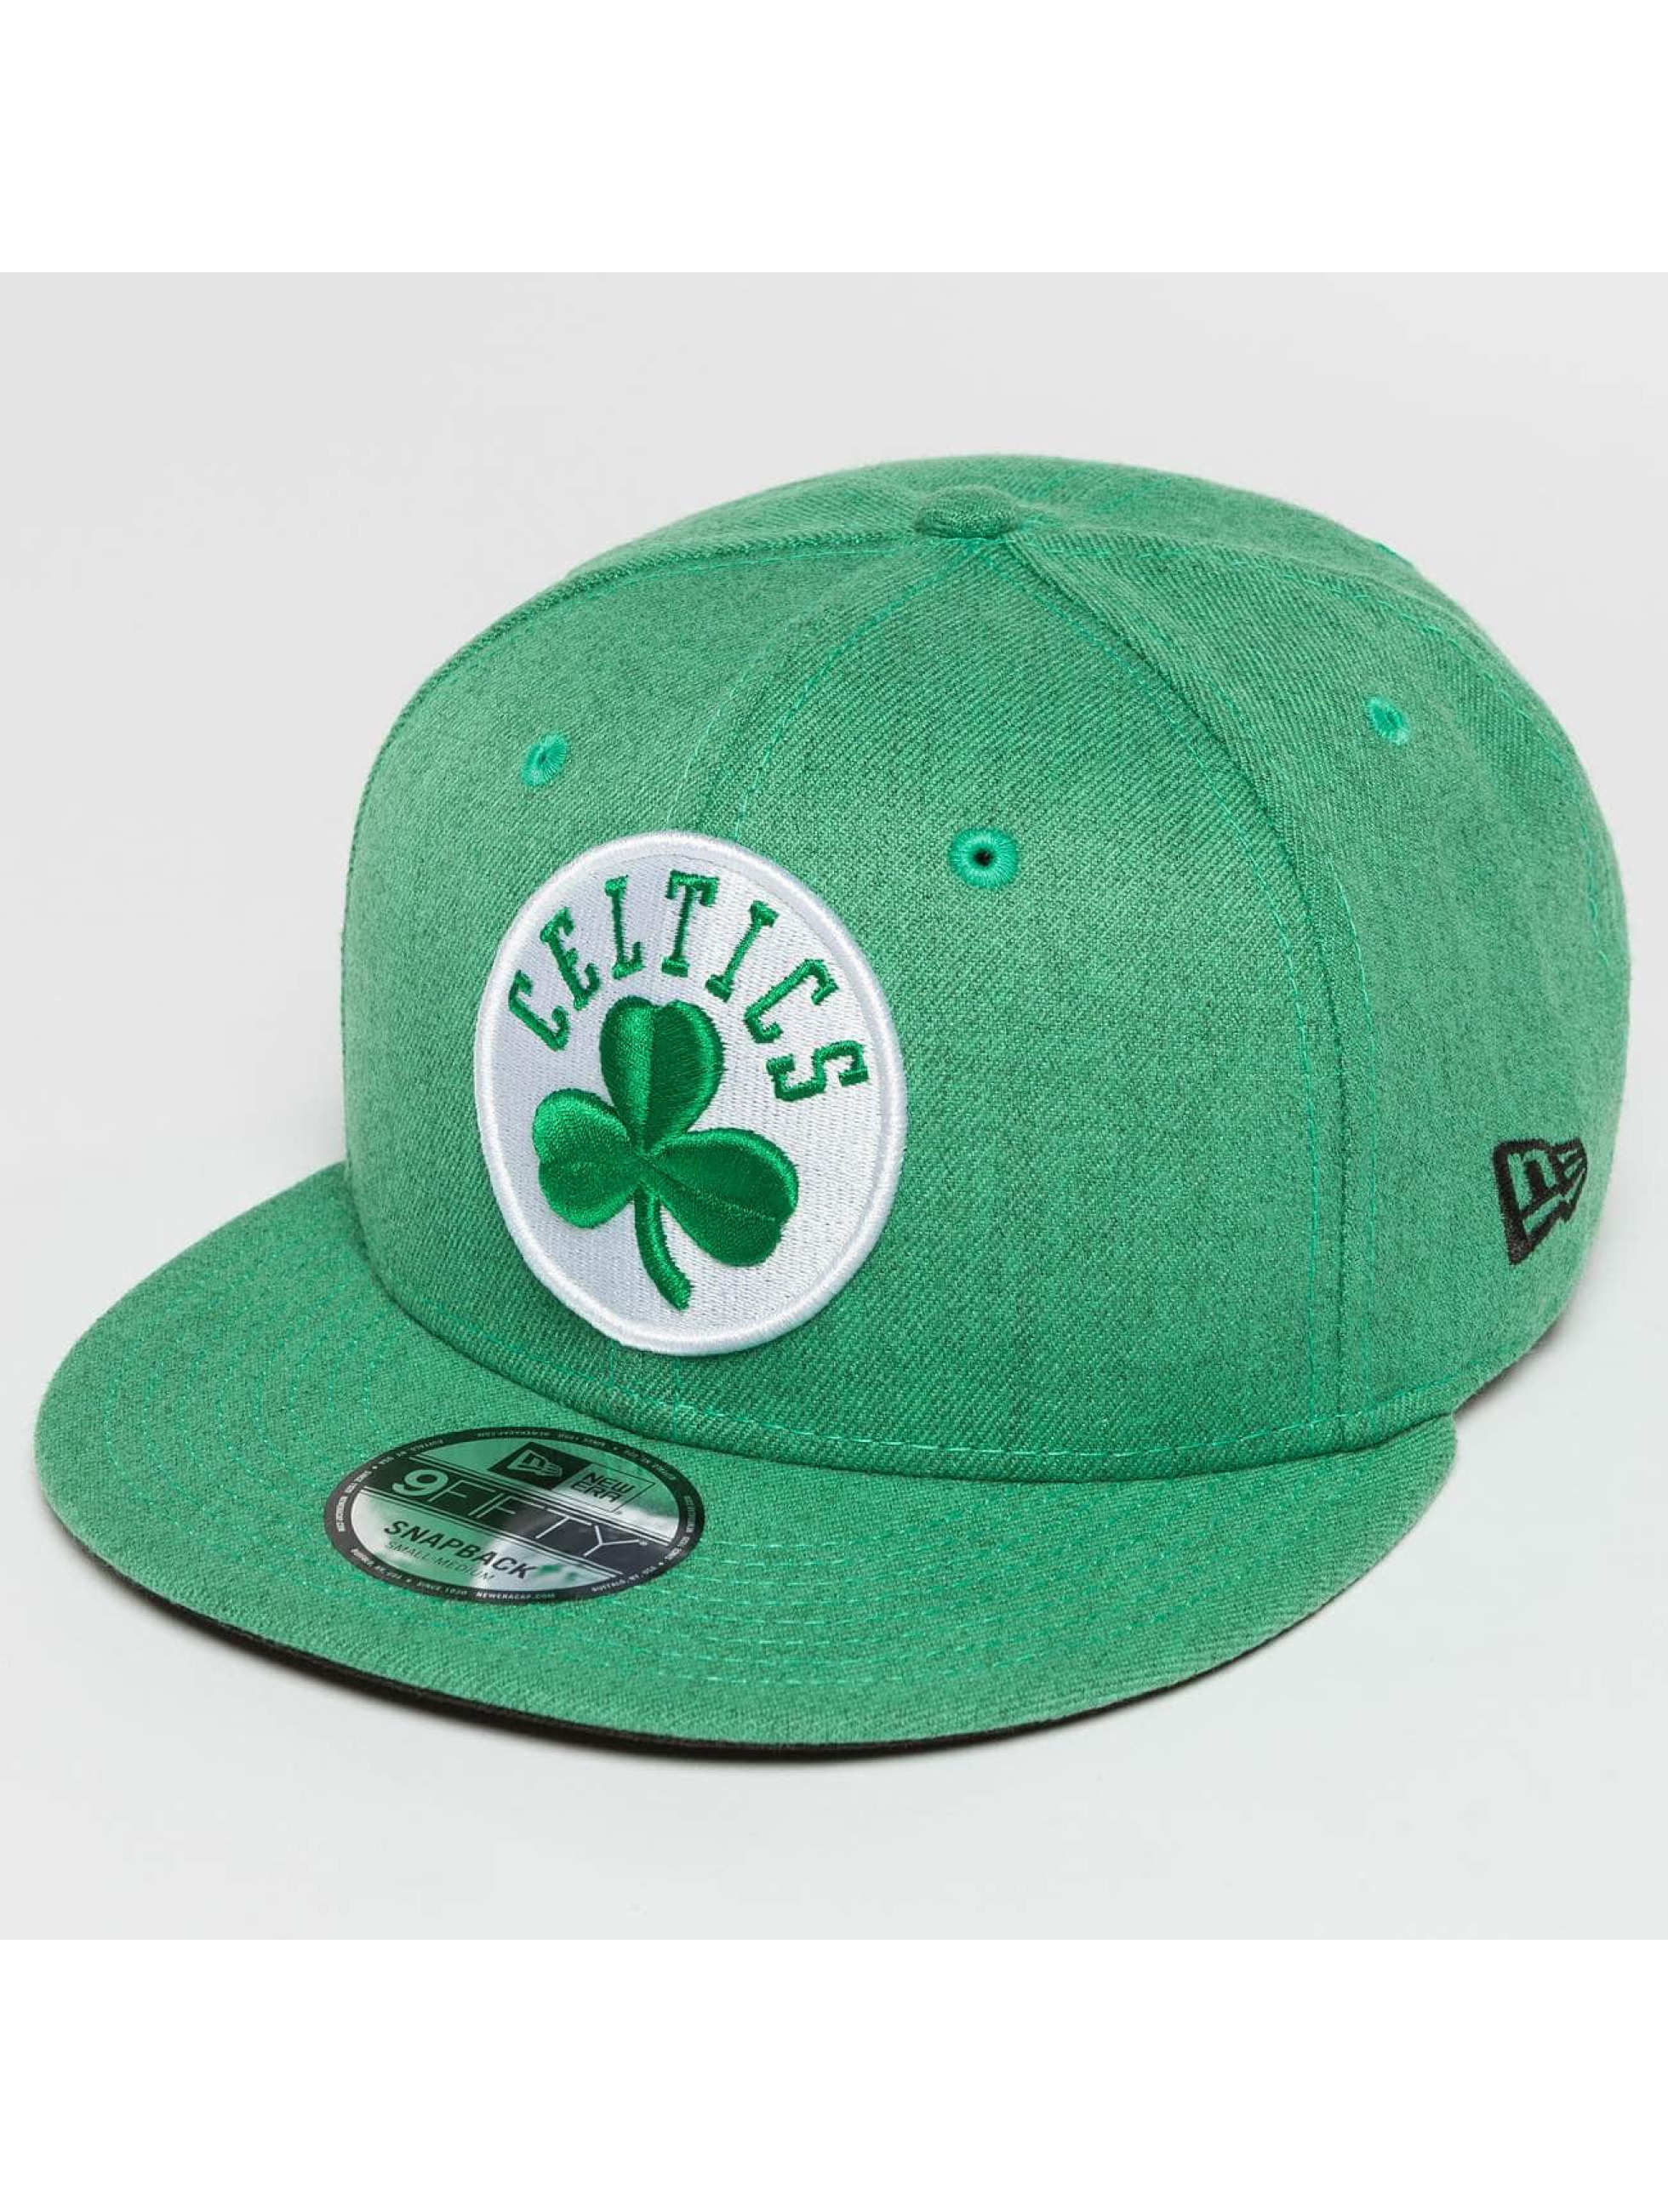 New Era Кепка с застёжкой Team Heather Boston Celtics 9Fifty зеленый